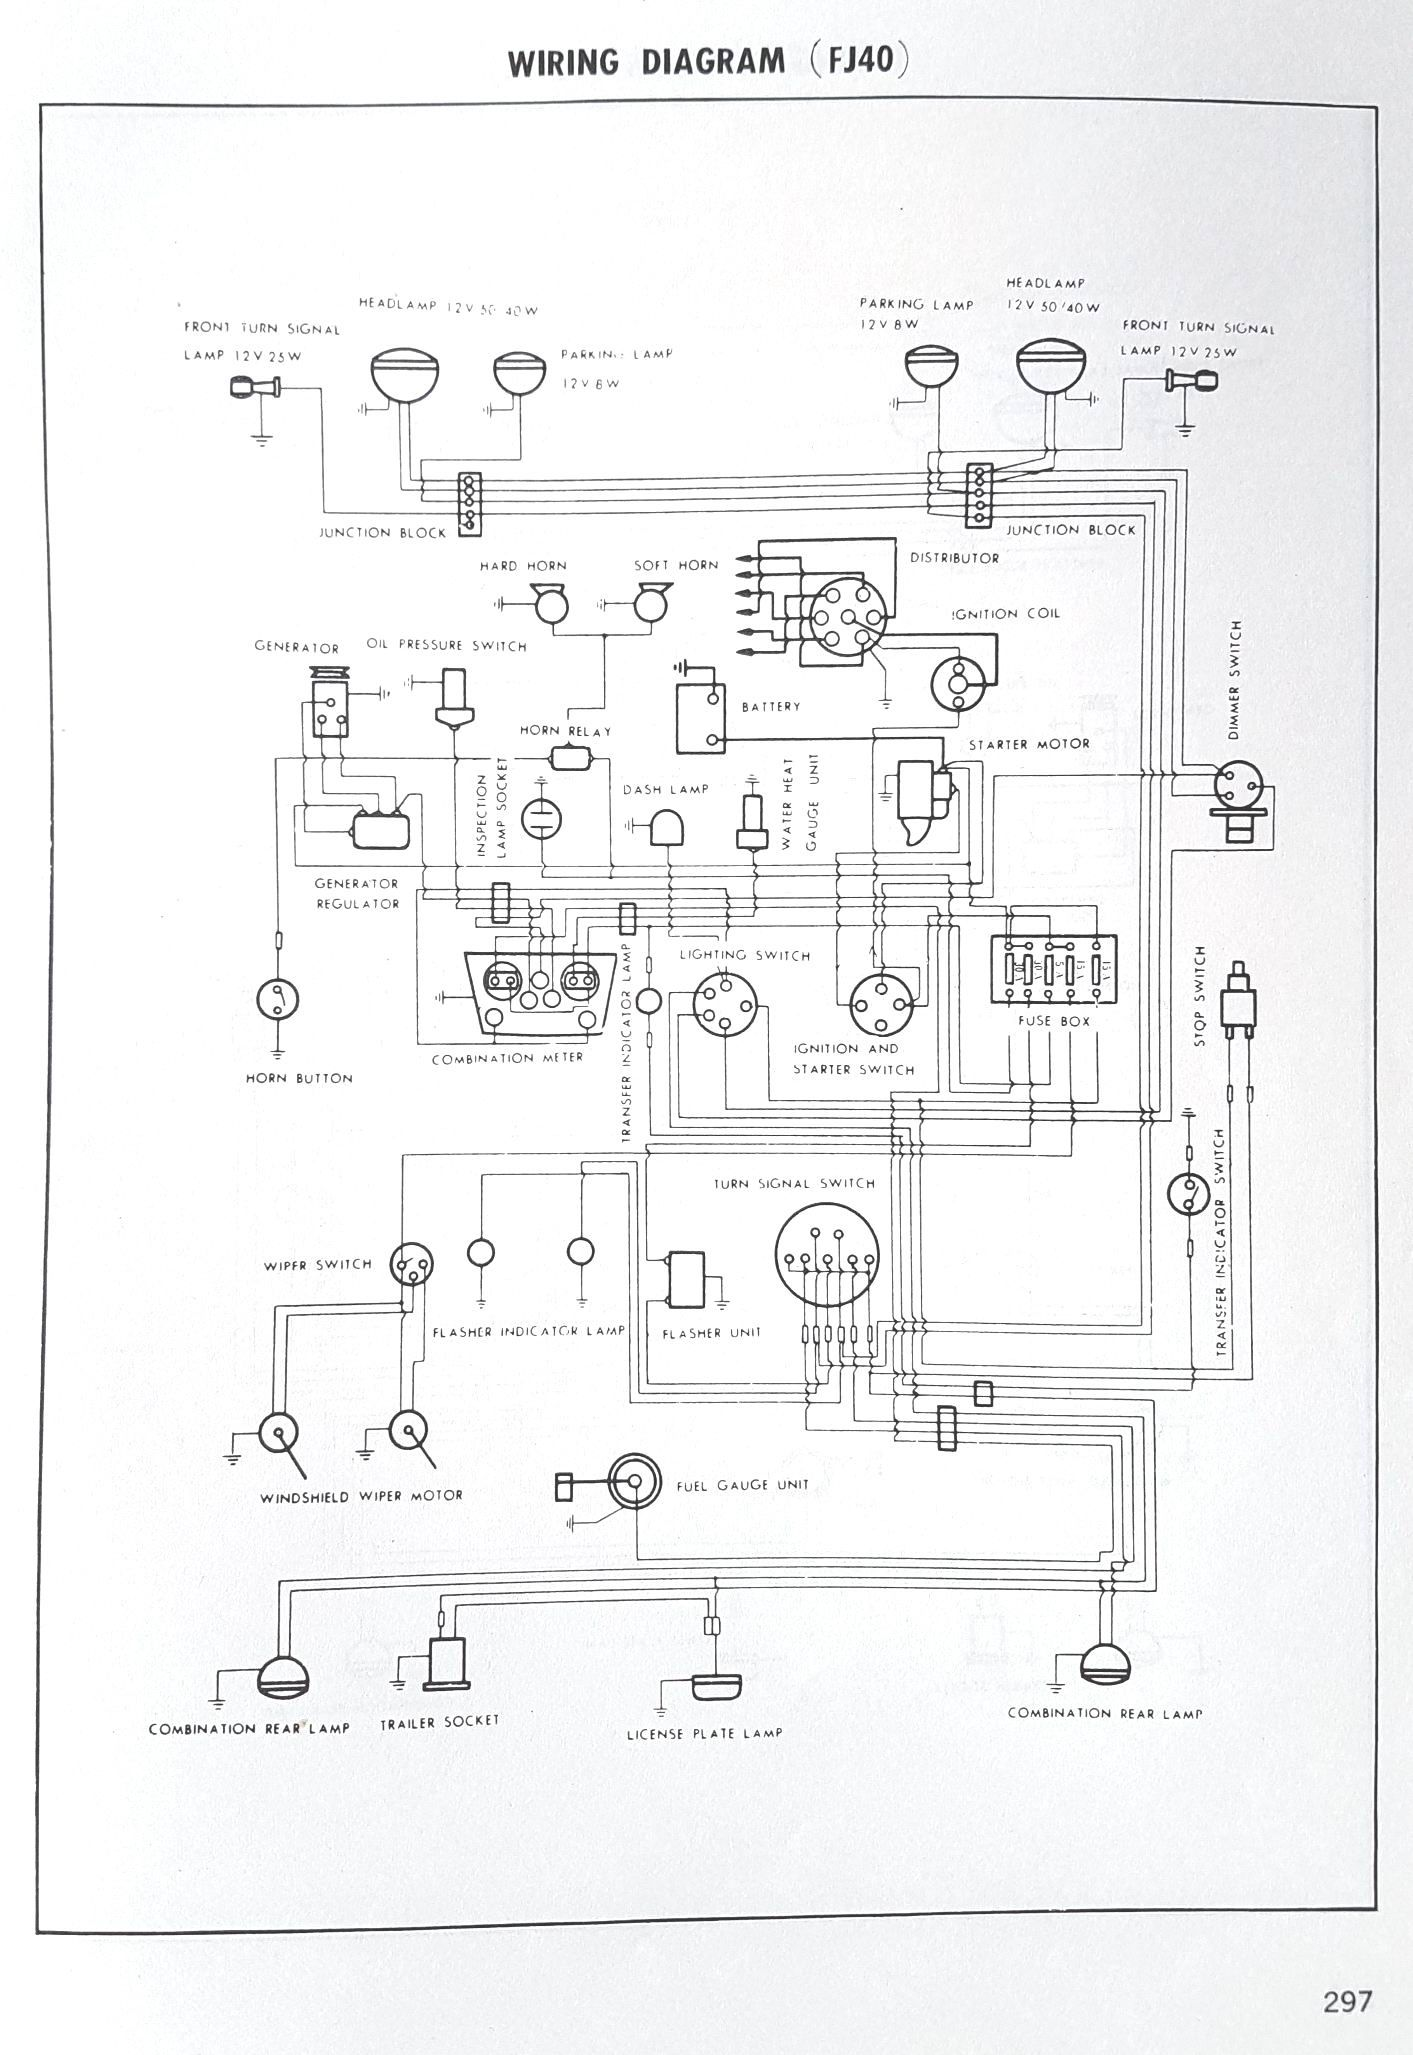 Toyota LandCruiser Service Manual wiring diagram FJ40